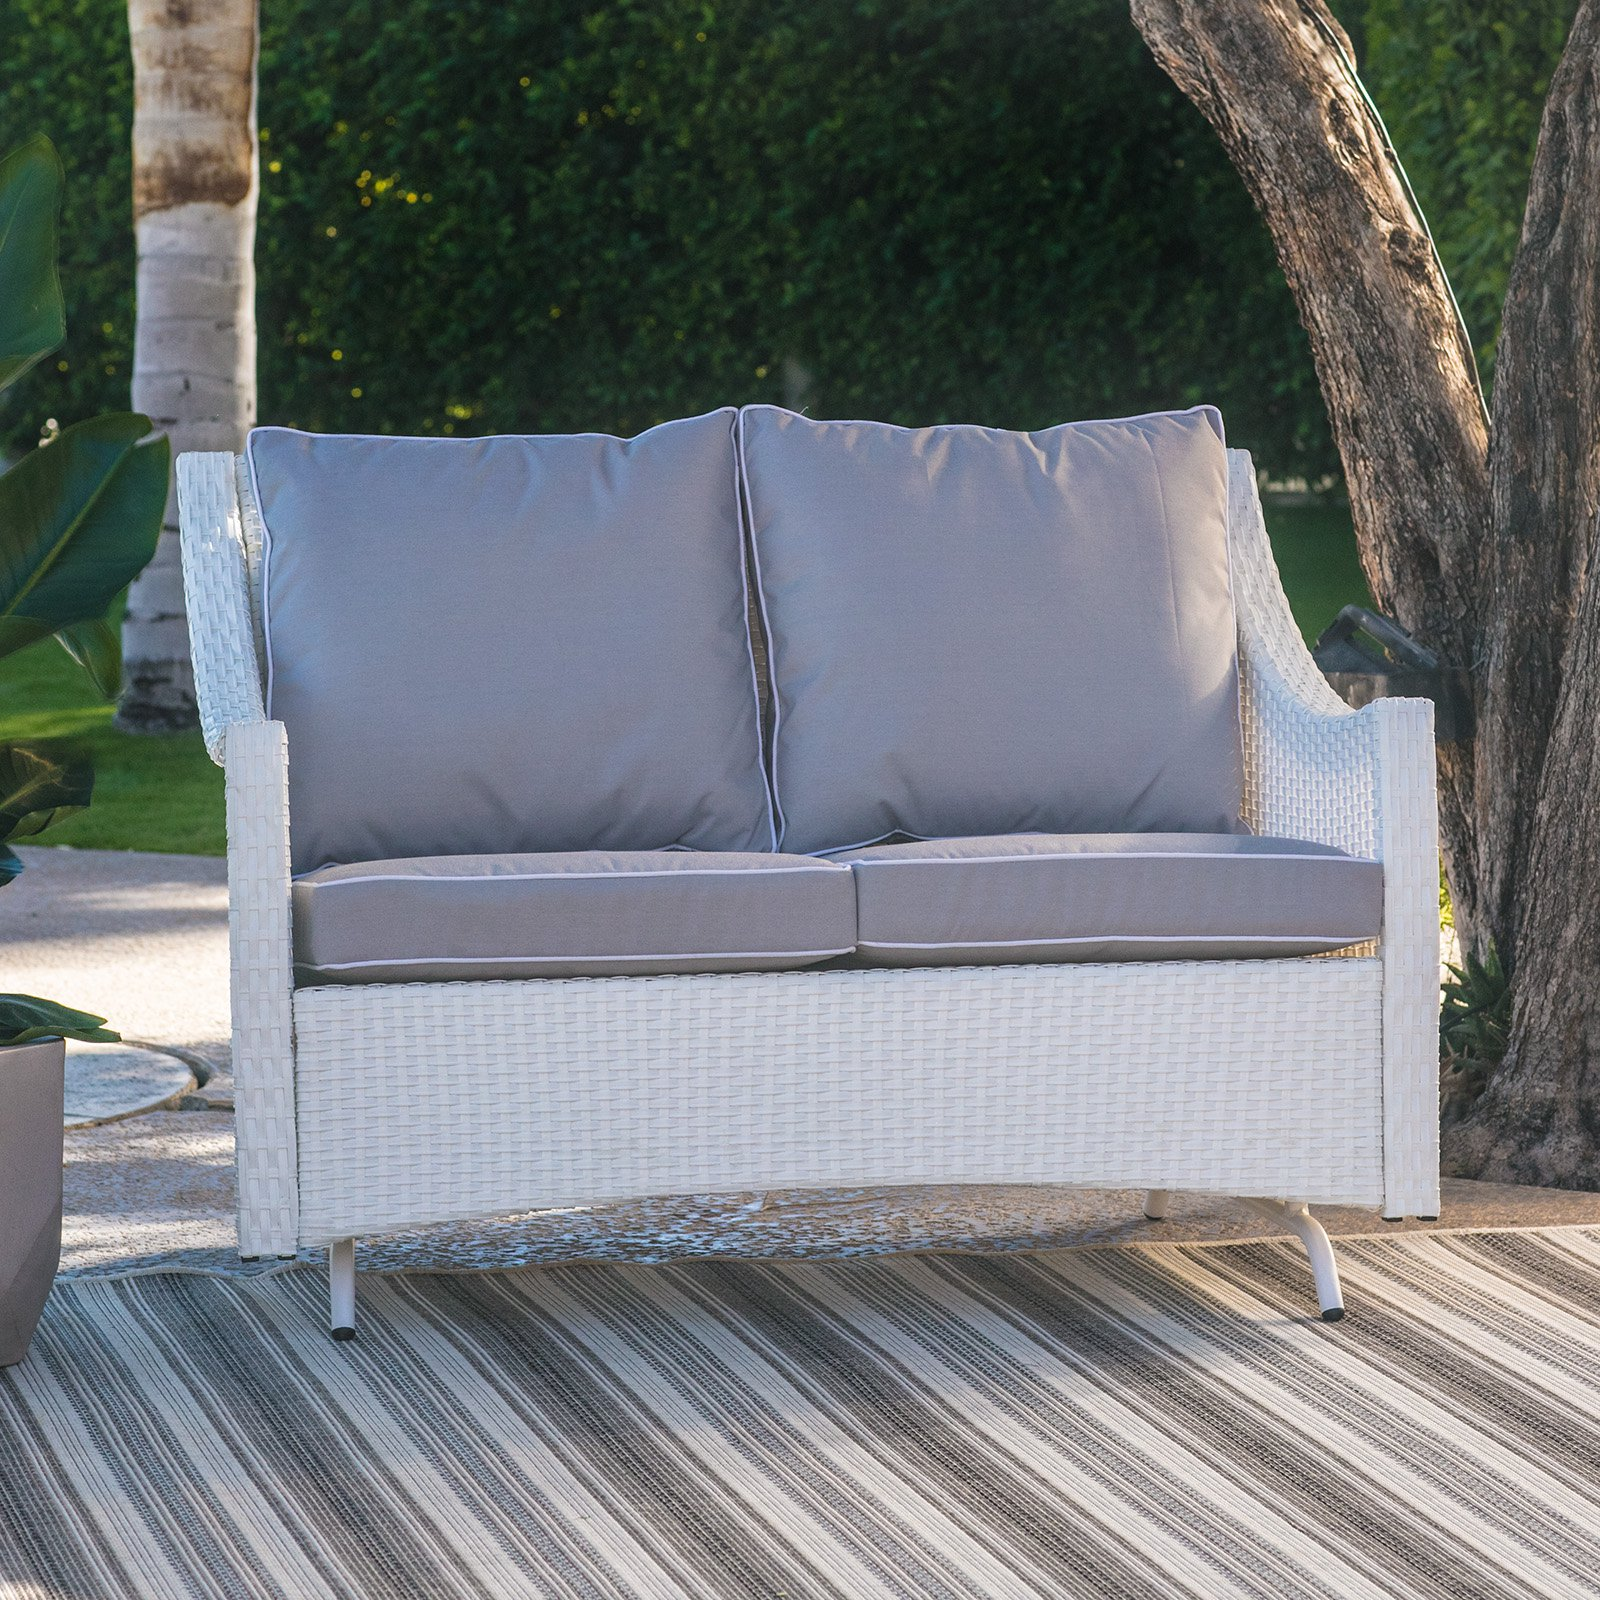 Belham Living Lindau All Weather Wicker Patio Loveseat Glider With Cushion    White